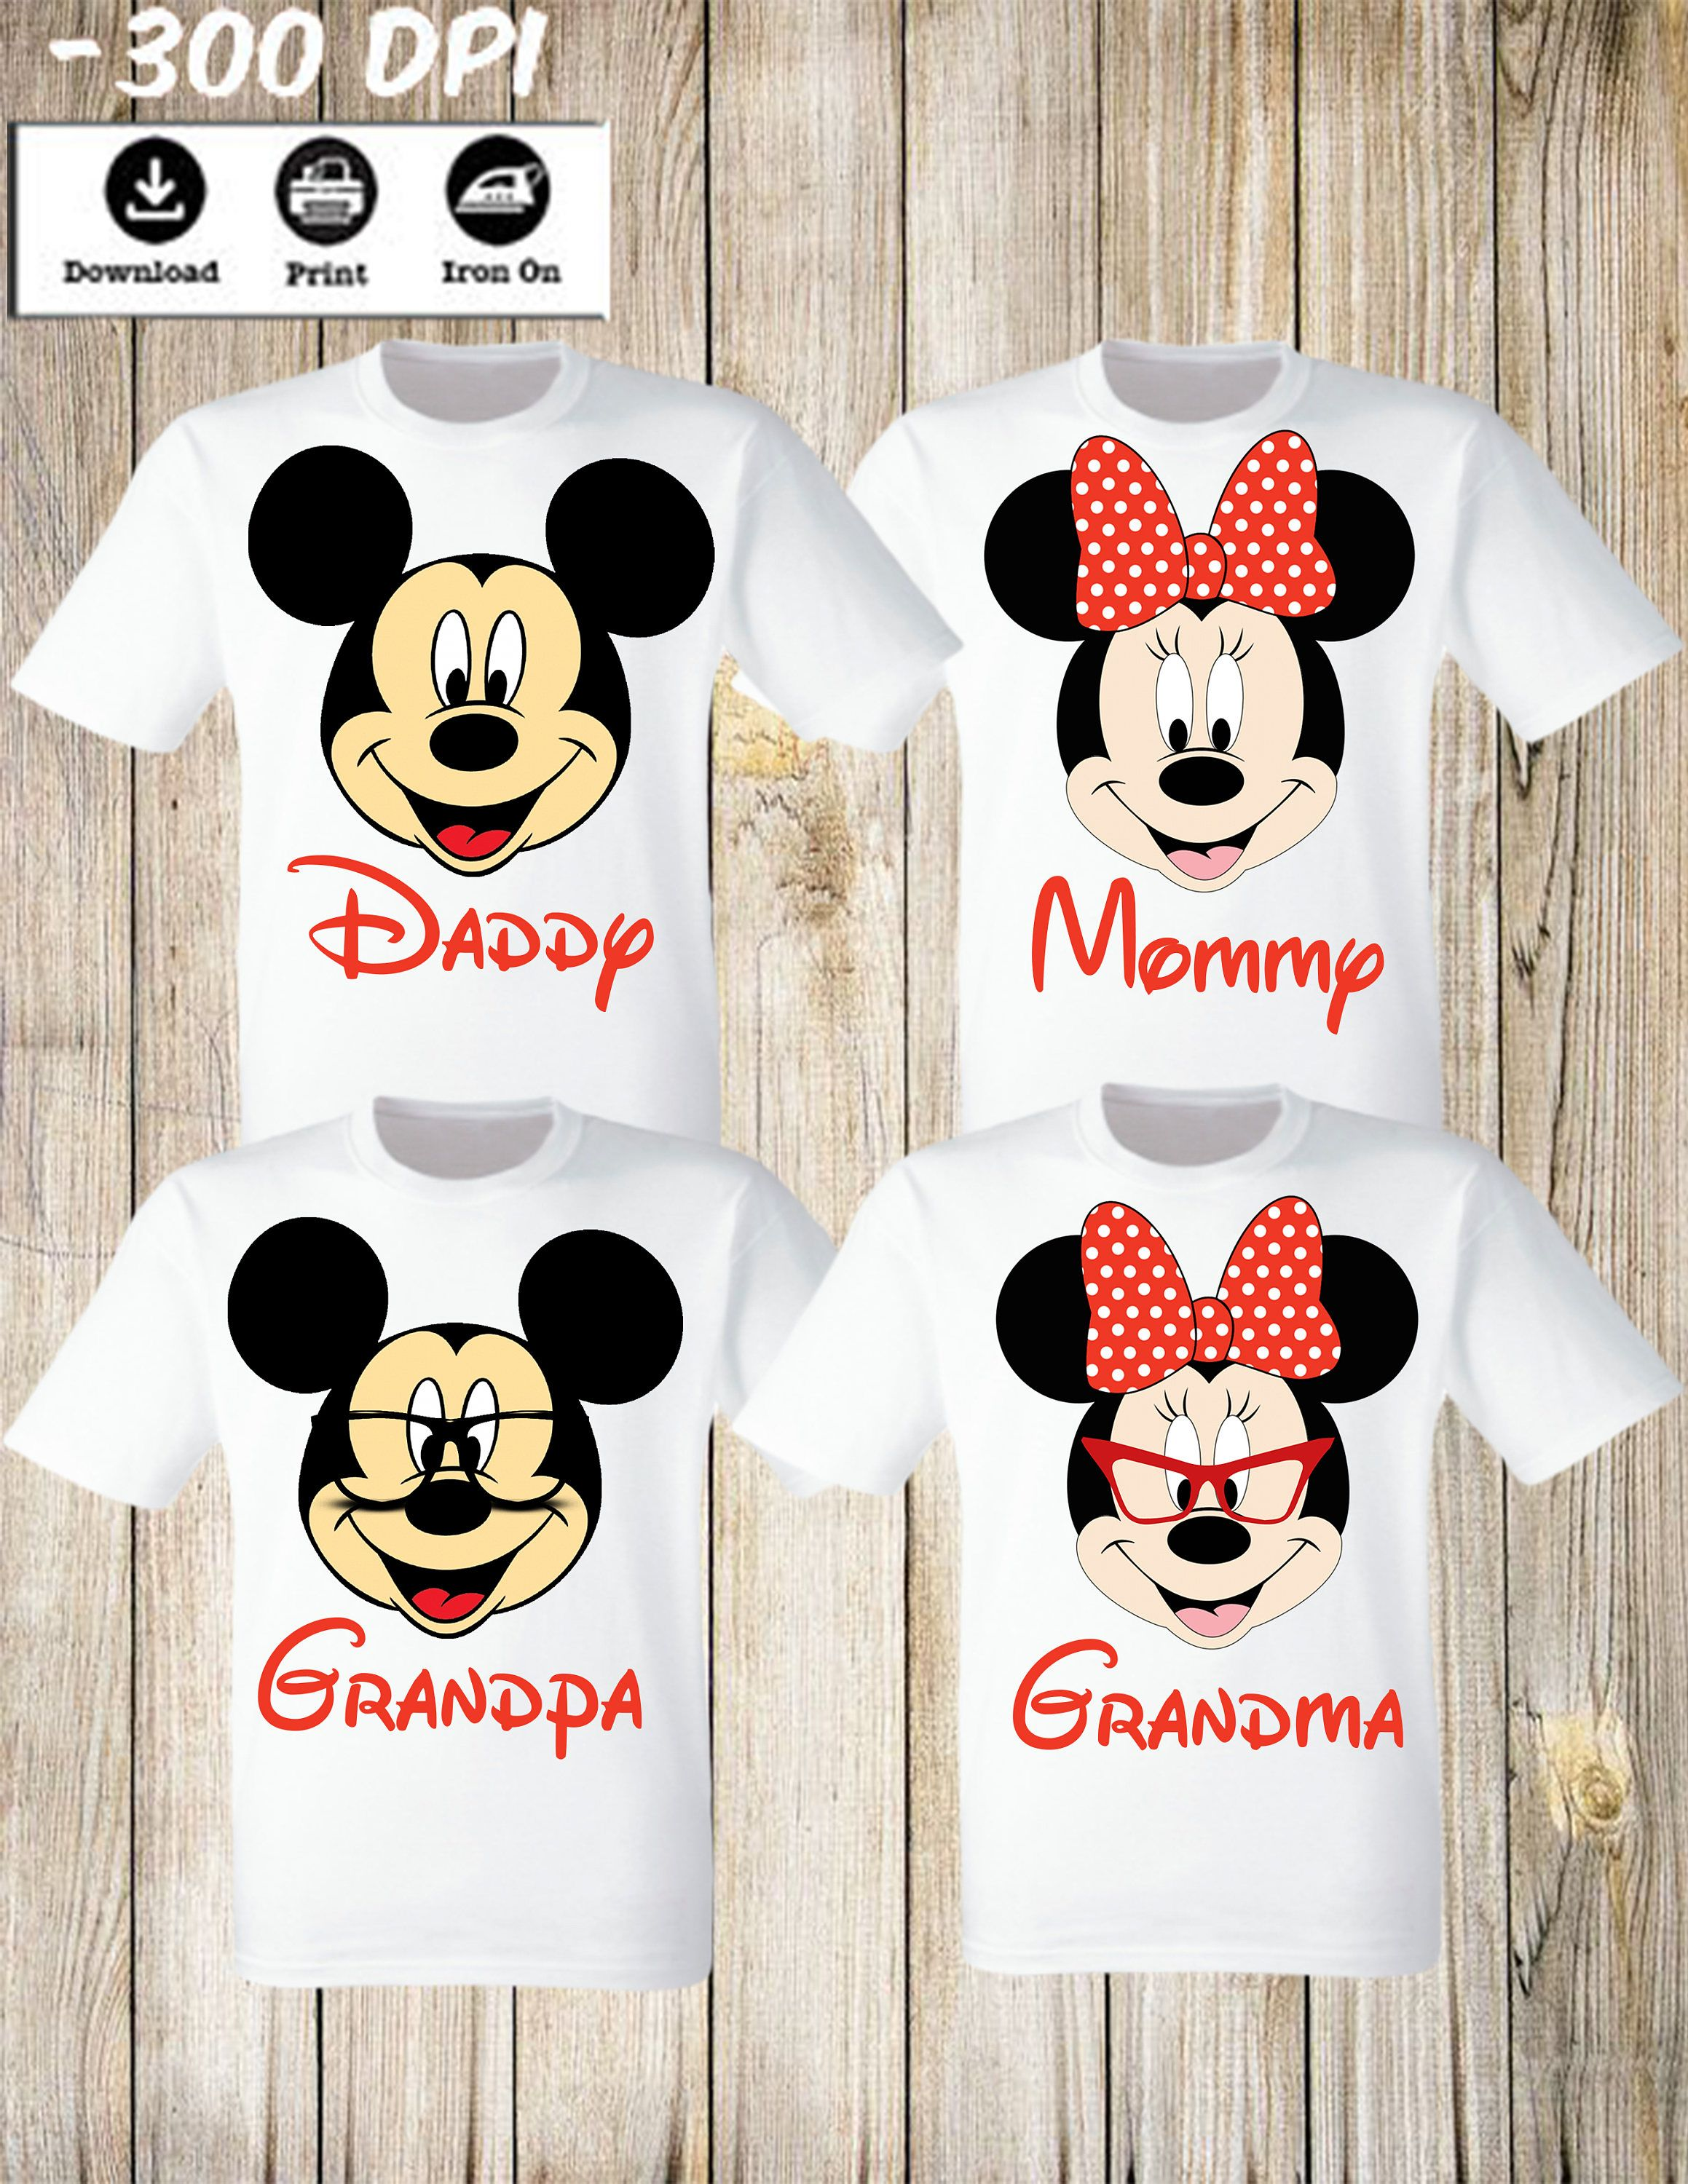 00a73fea2e5e Disney Mickey Minnie Family Set of 4 T Shirts iron on. Mickey Minnie Mouse  Grandpa Grandma Daddy Mommy Family Set. Personalized Matching by ...